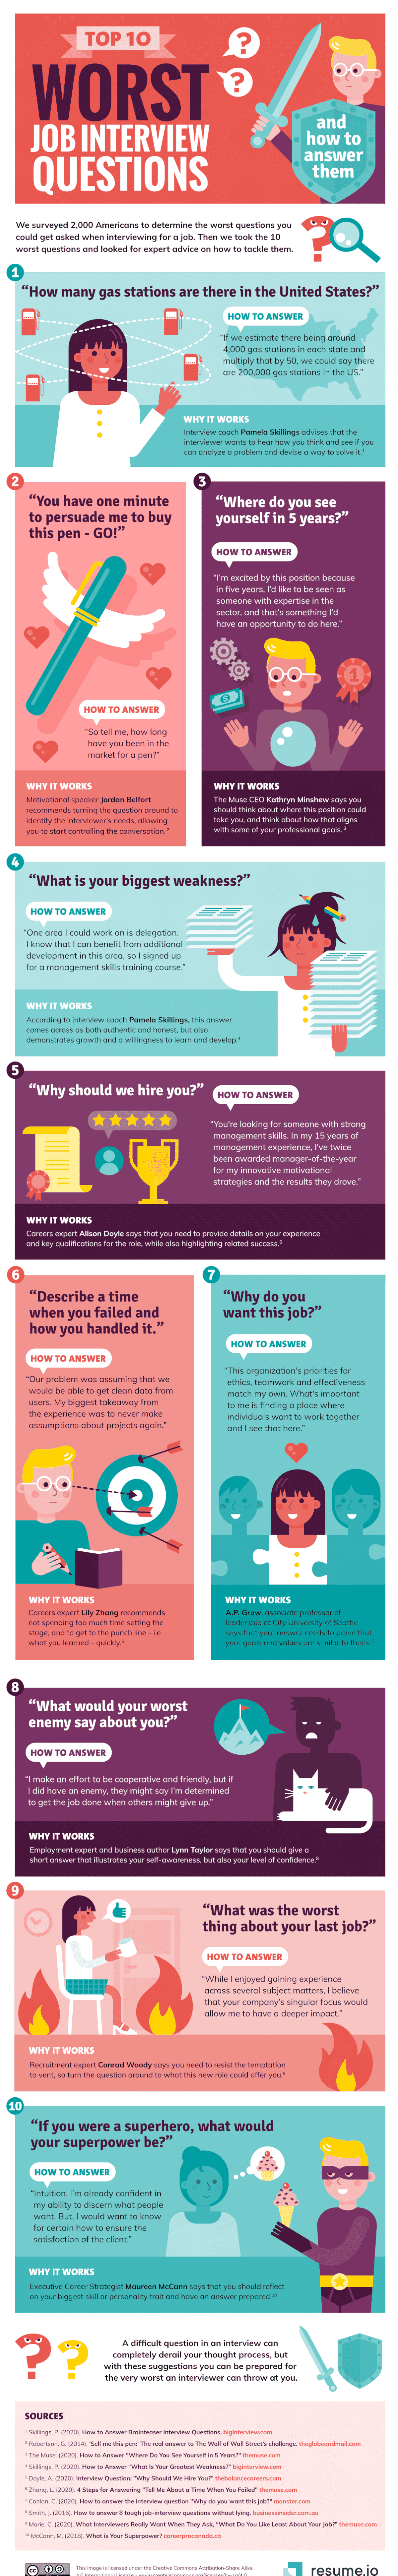 Infographic giving advice on how to answer 10 of the toughest interview questions.